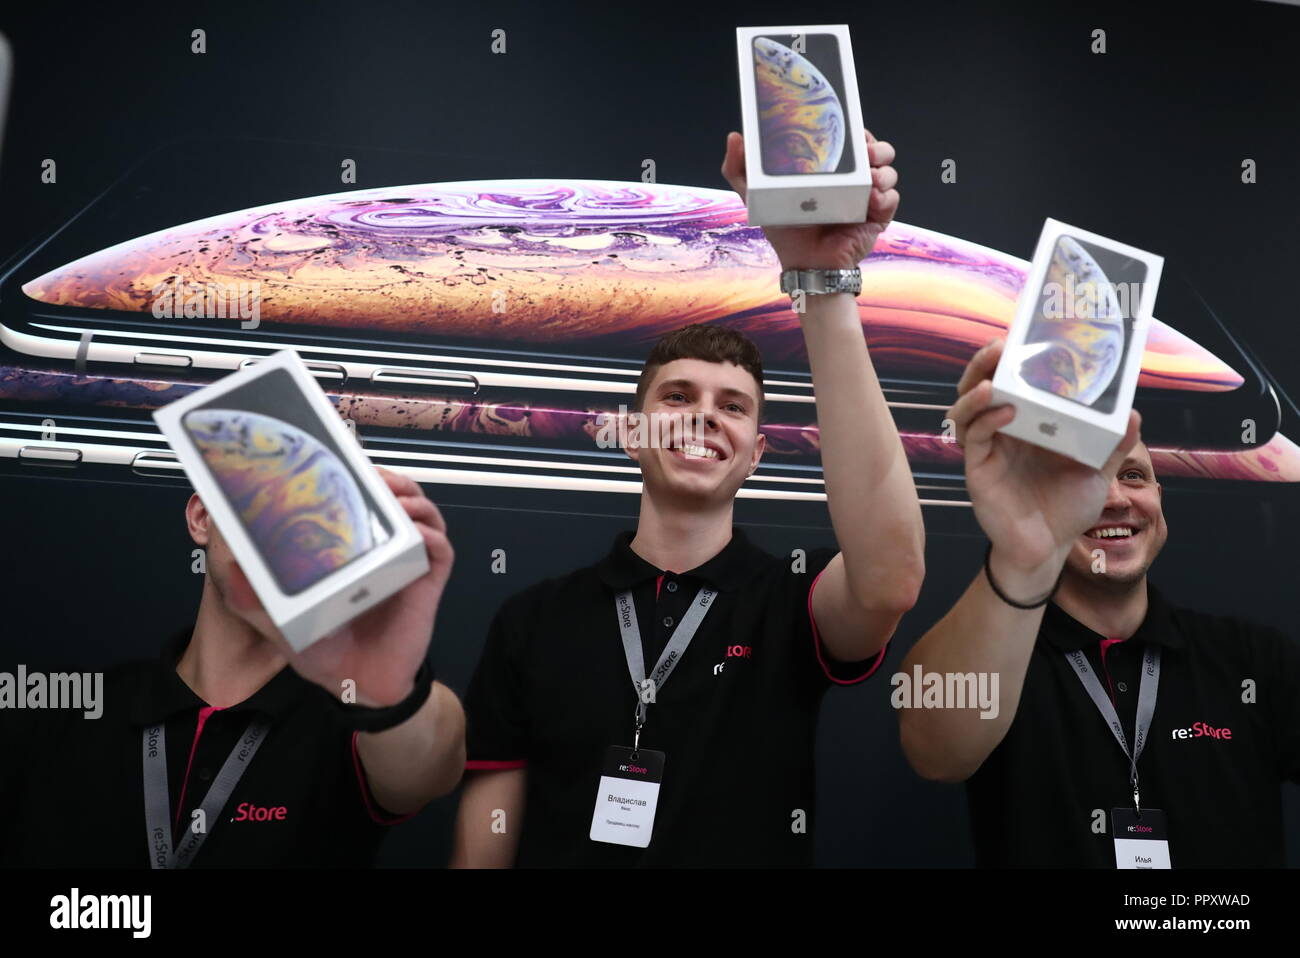 Moscow, Russia. 28th Sep, 2018. MOSCOW, RUSSIA - SEPTEMBER 28, 2018: re:Store shop assistants as Apple launches iPhone XS, iPhone XS Max, and iPhone XR sales in Russia. Anton Novoderezhkin/TASS Credit: ITAR-TASS News Agency/Alamy Live News - Stock Image